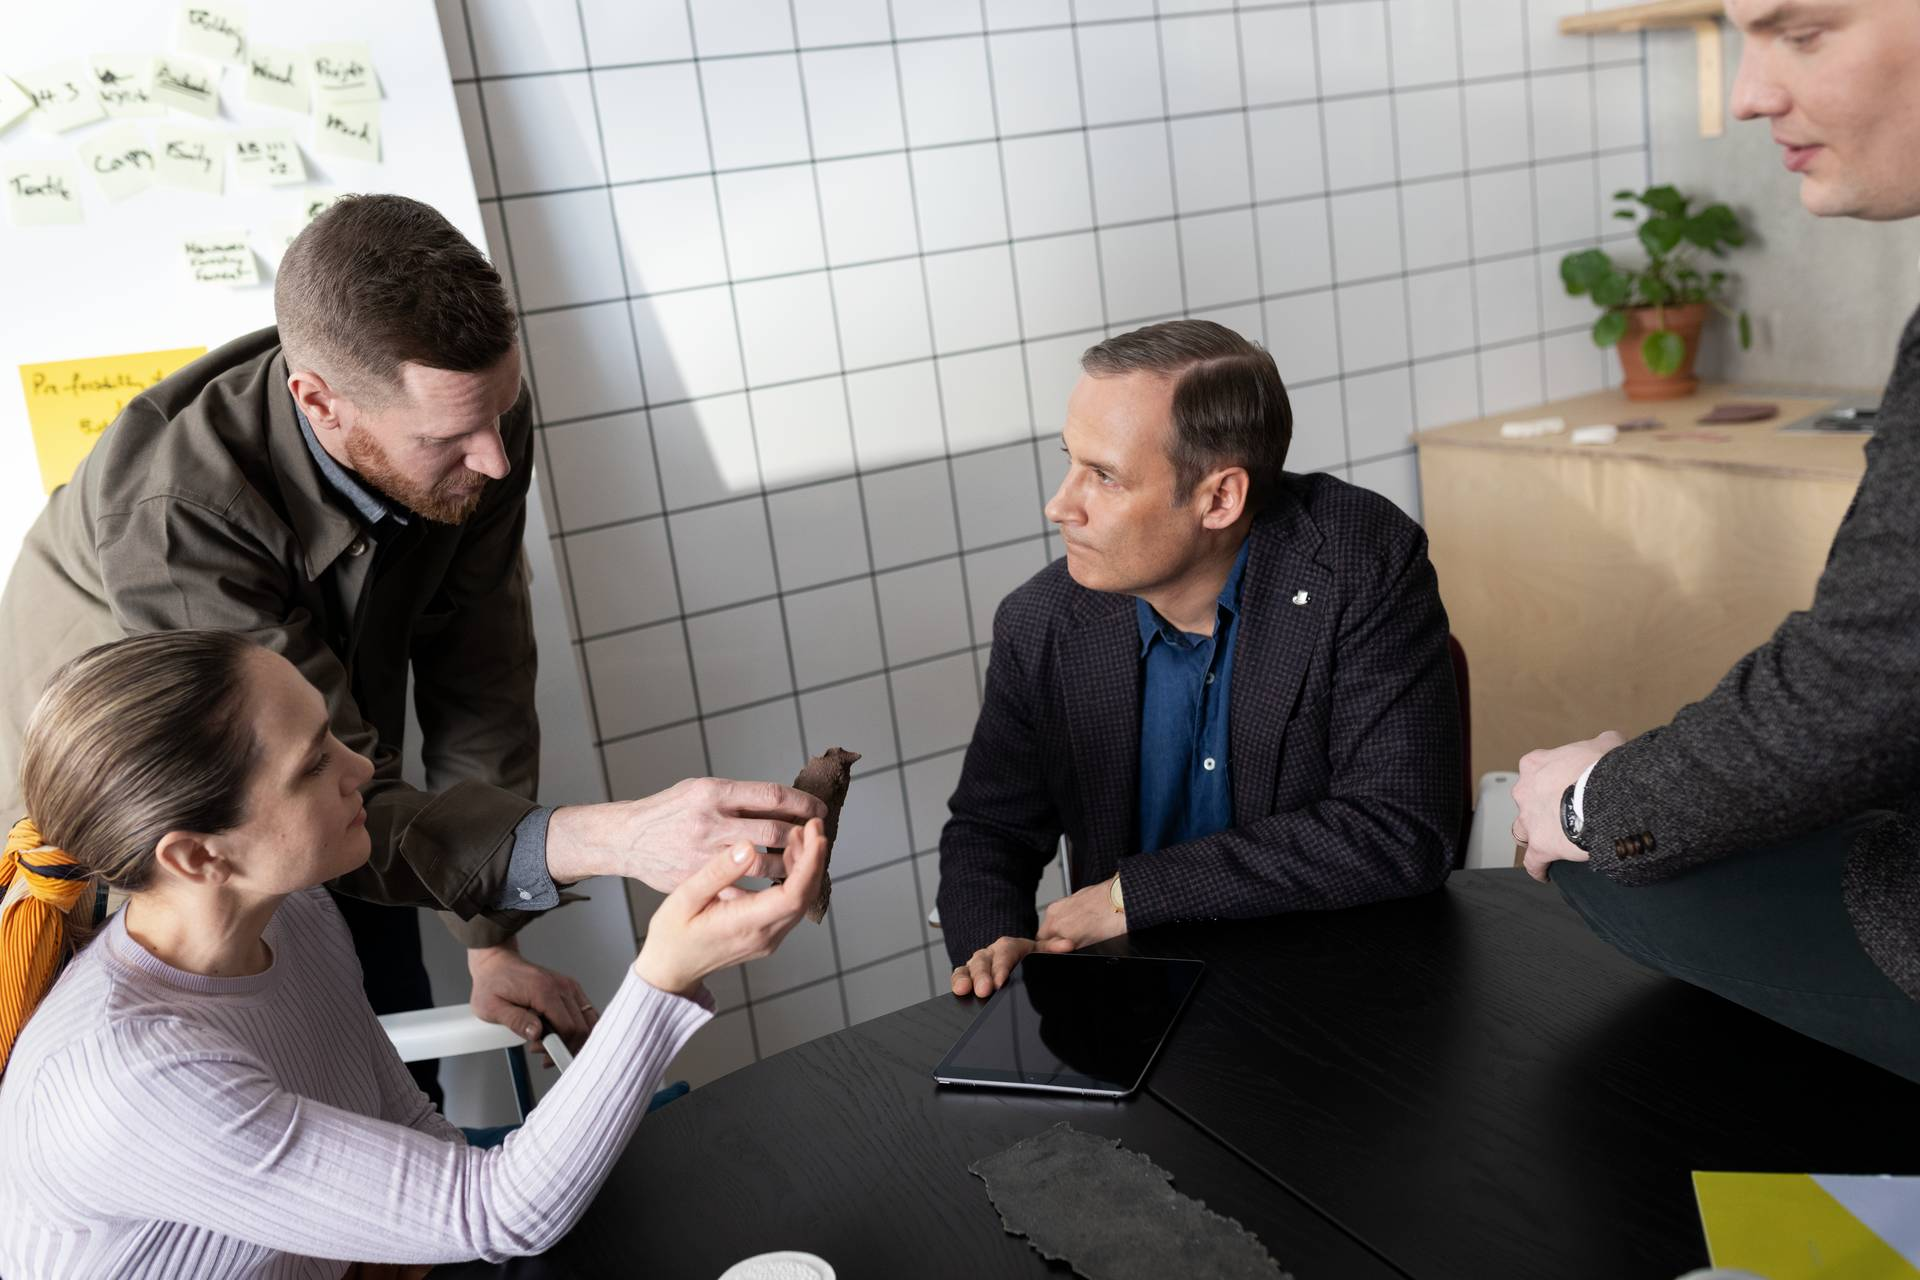 Metsä Group is setting up a Group R&D function – ExpandFibre showing the way towards ambitious new collaboration schemes